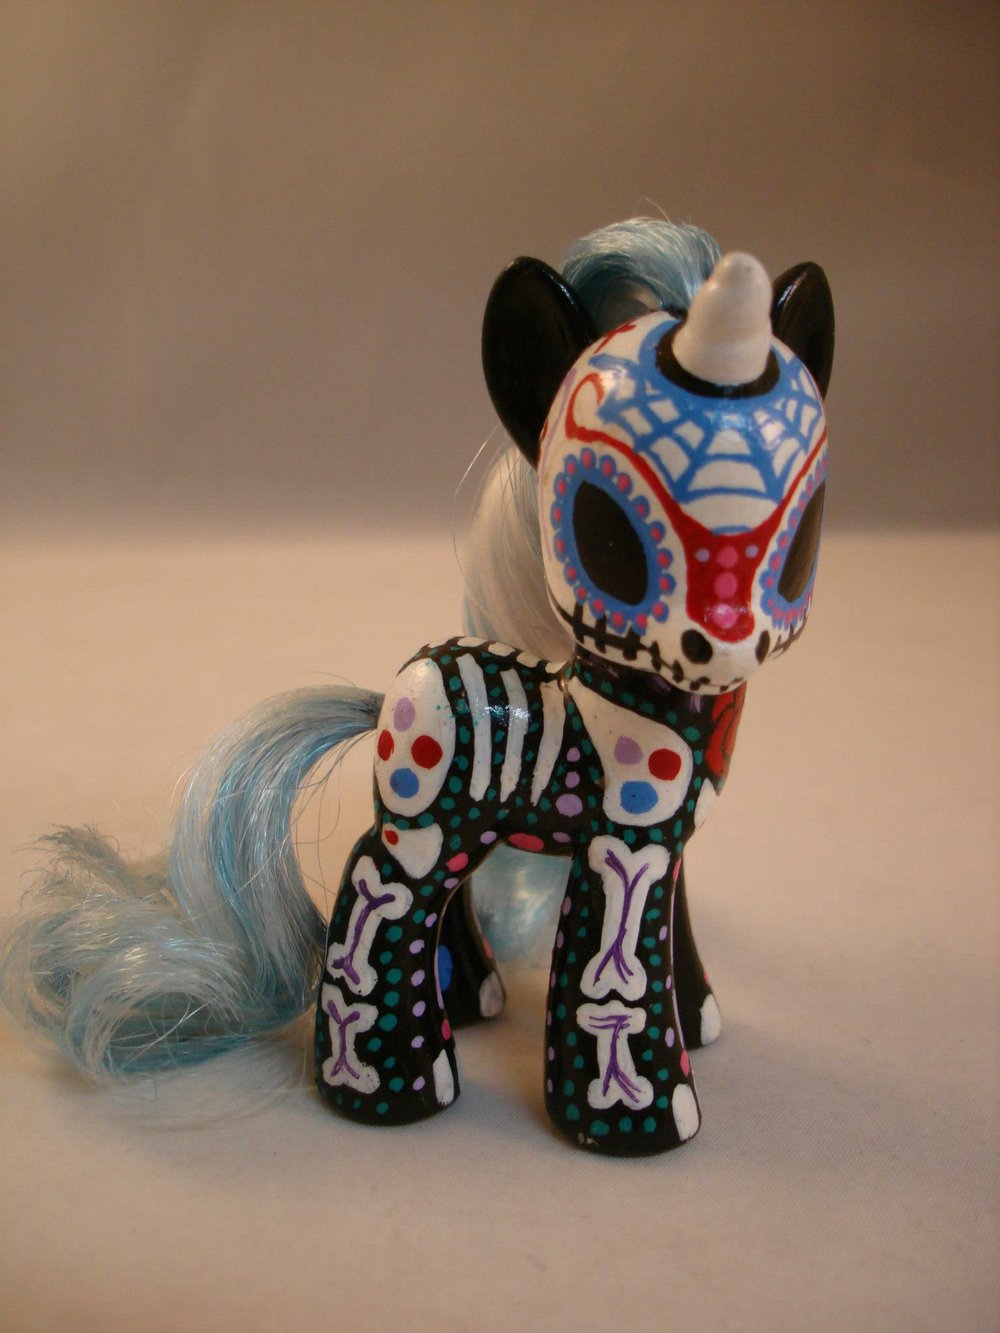 Vinylmation unicorn, by Optimus Volts